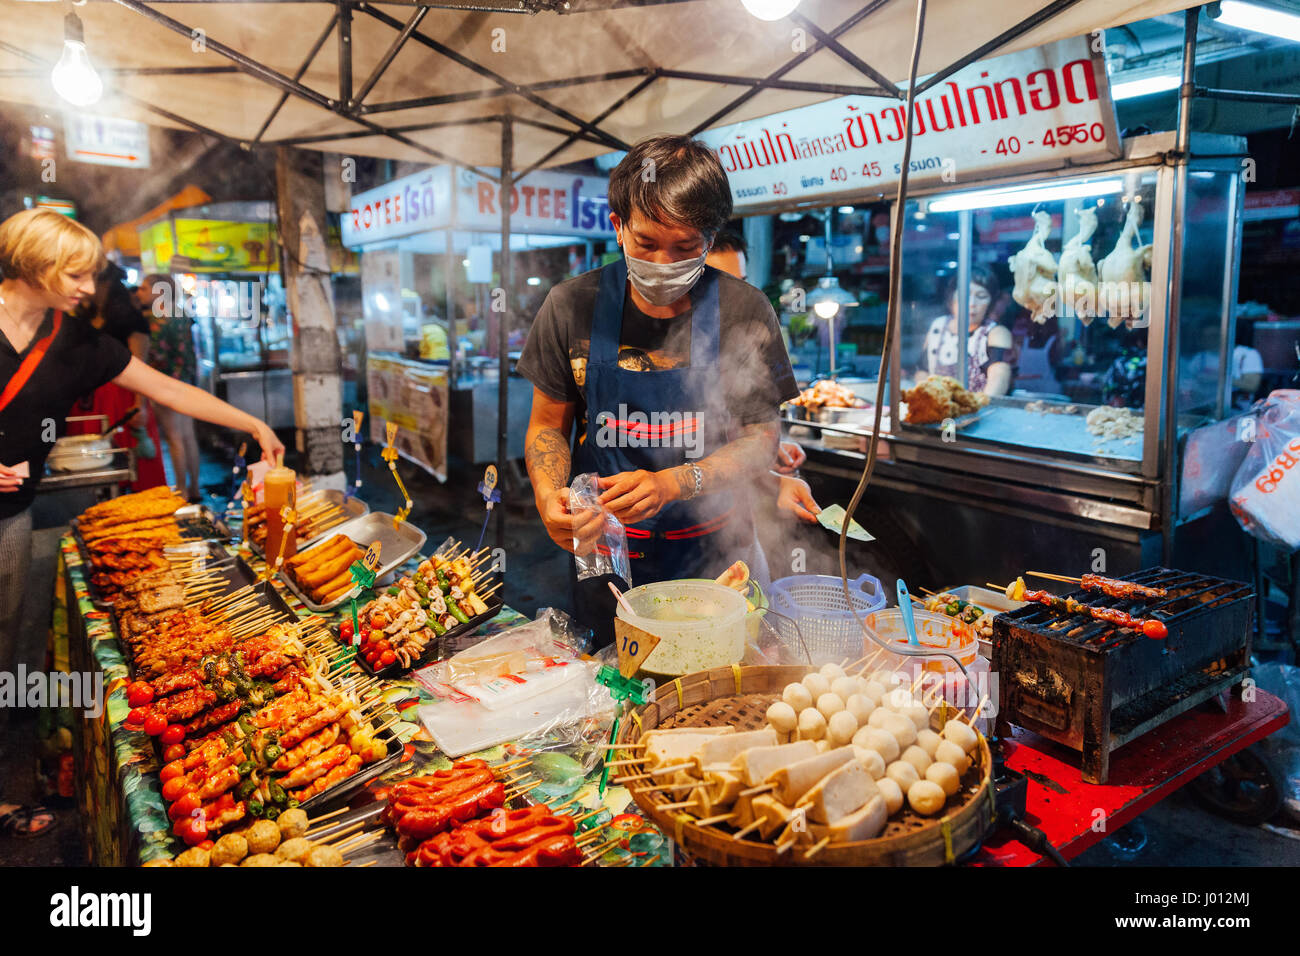 Chiang Mai, Thailand - August 27, 2016: Young man sells satay at the Saturday Night Market on August 27, 2016 in - Stock Image